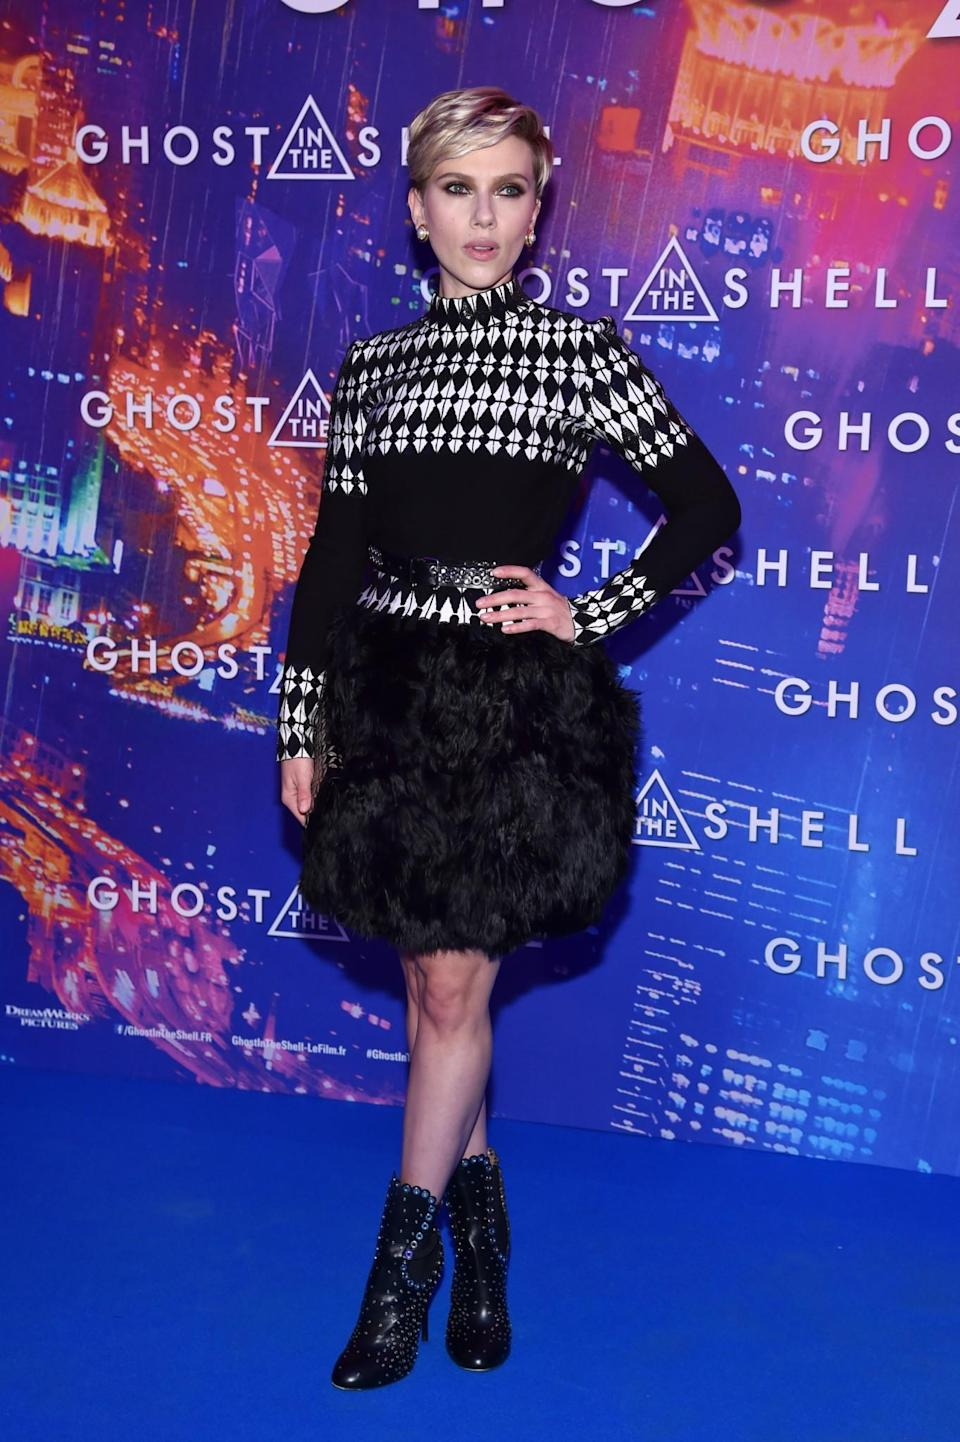 <p>Scarlett's monochrome Alaia look was the right level of fun with a harlequin-print top and feathery skirt.<br><i>[Photo: Getty]</i> </p>